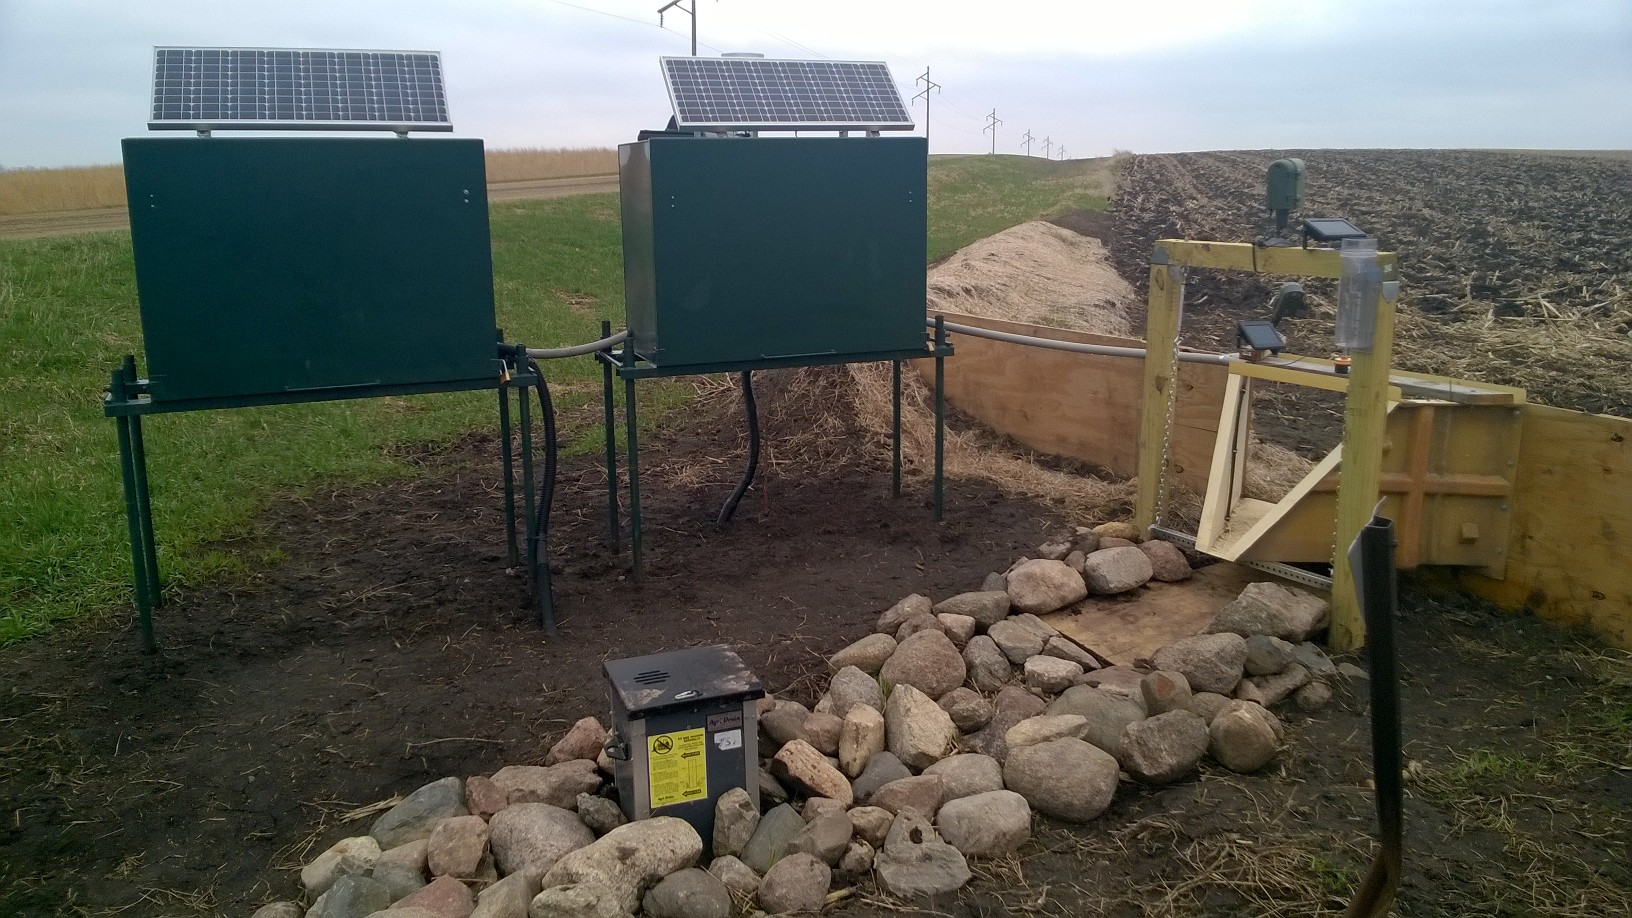 One of two monitoring stations, installed by Discovery Farms Minnesota. By comparing runoff from adjacent areas, Discovery Farms will measure the impact of conservation practices.